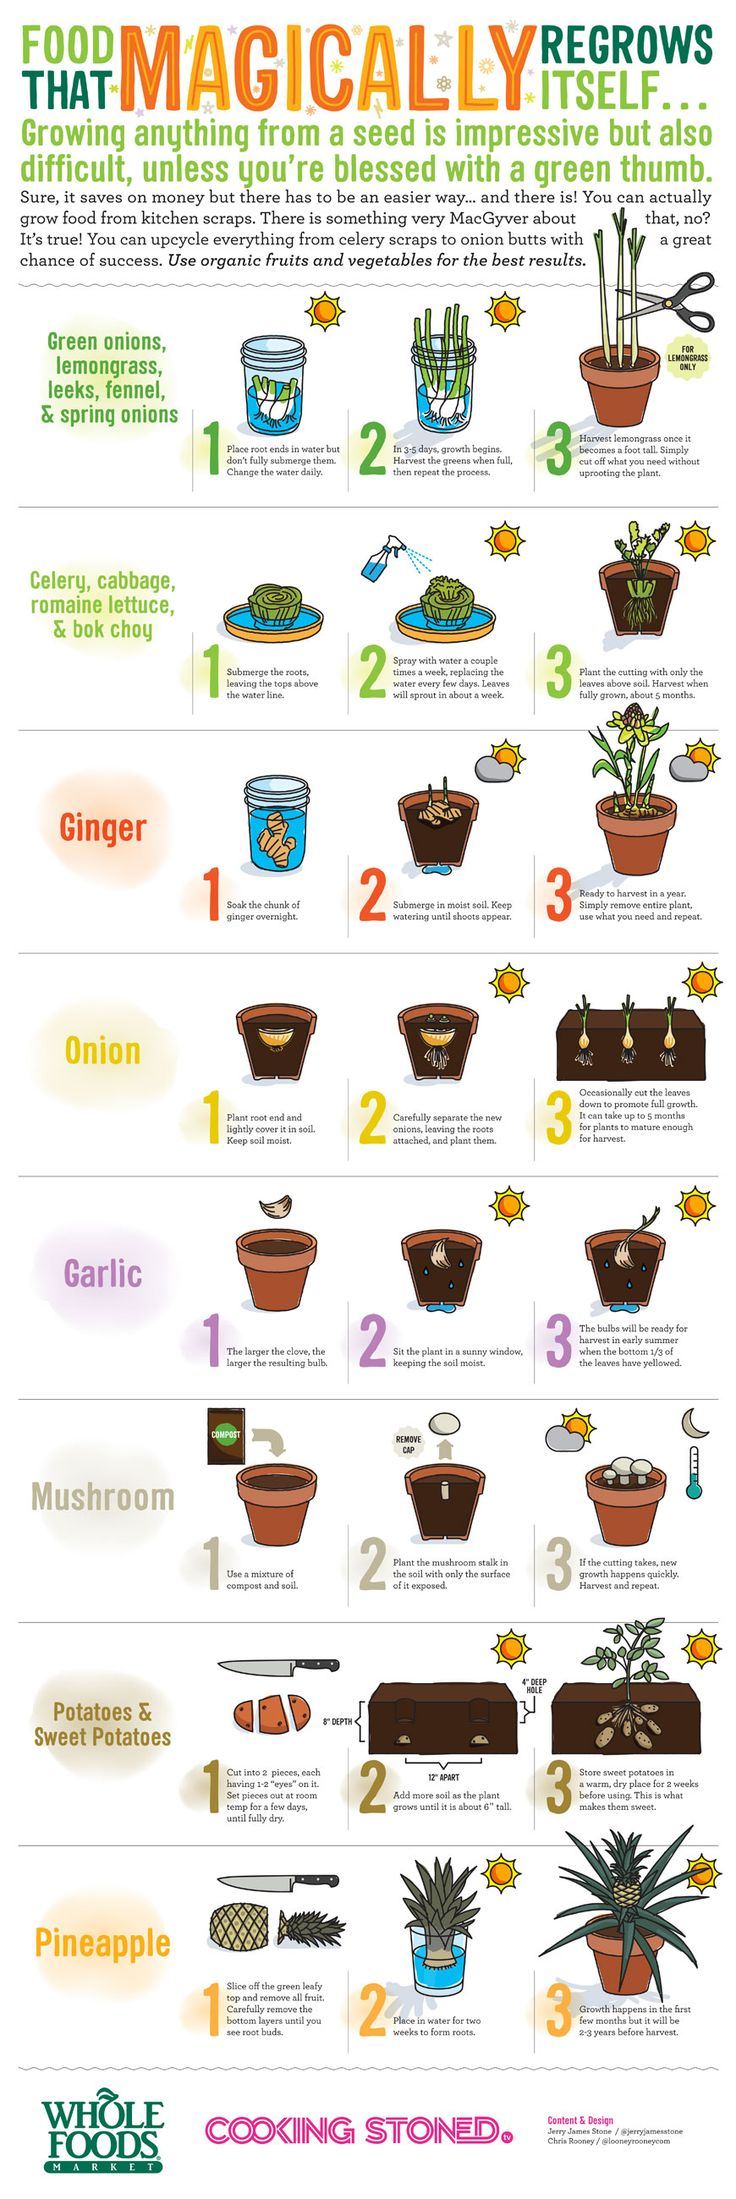 1000+ images about Gardening on Pinterest.